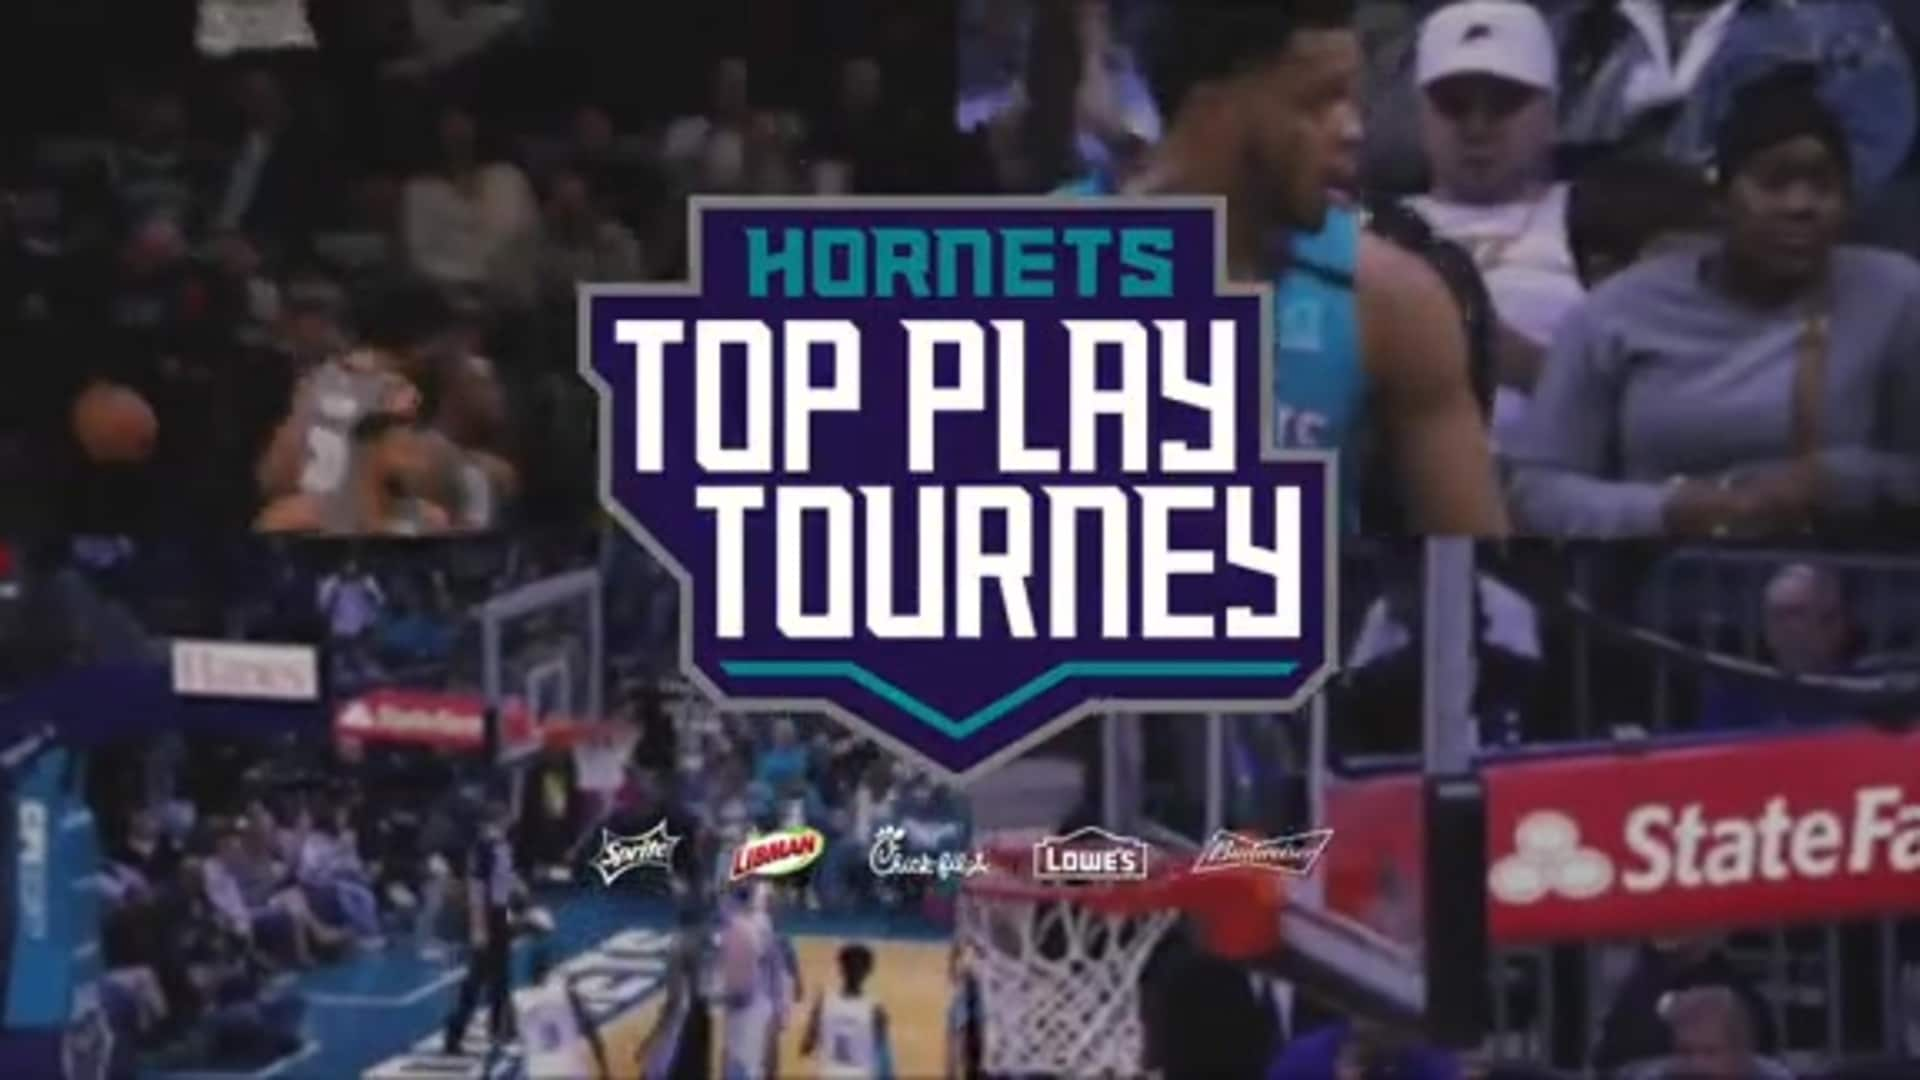 2019-20 Hornets Top Play Tourney